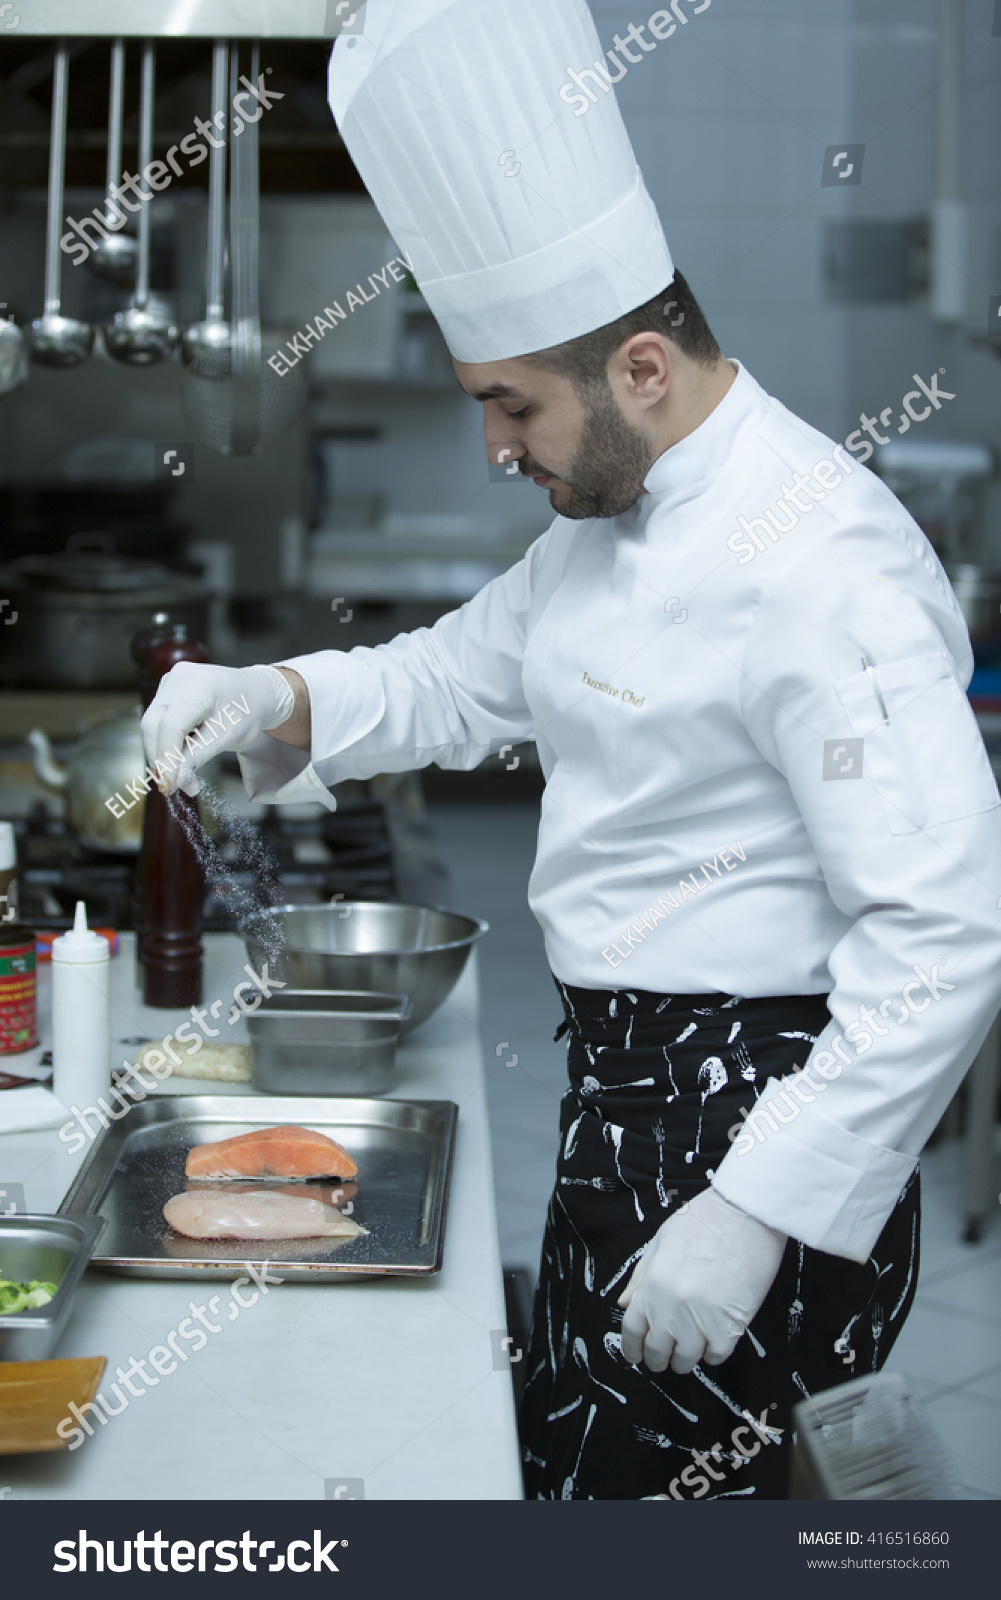 Chefc Cooking Executive Chef Cooking Restaurant Stock Photo (Royalty ...